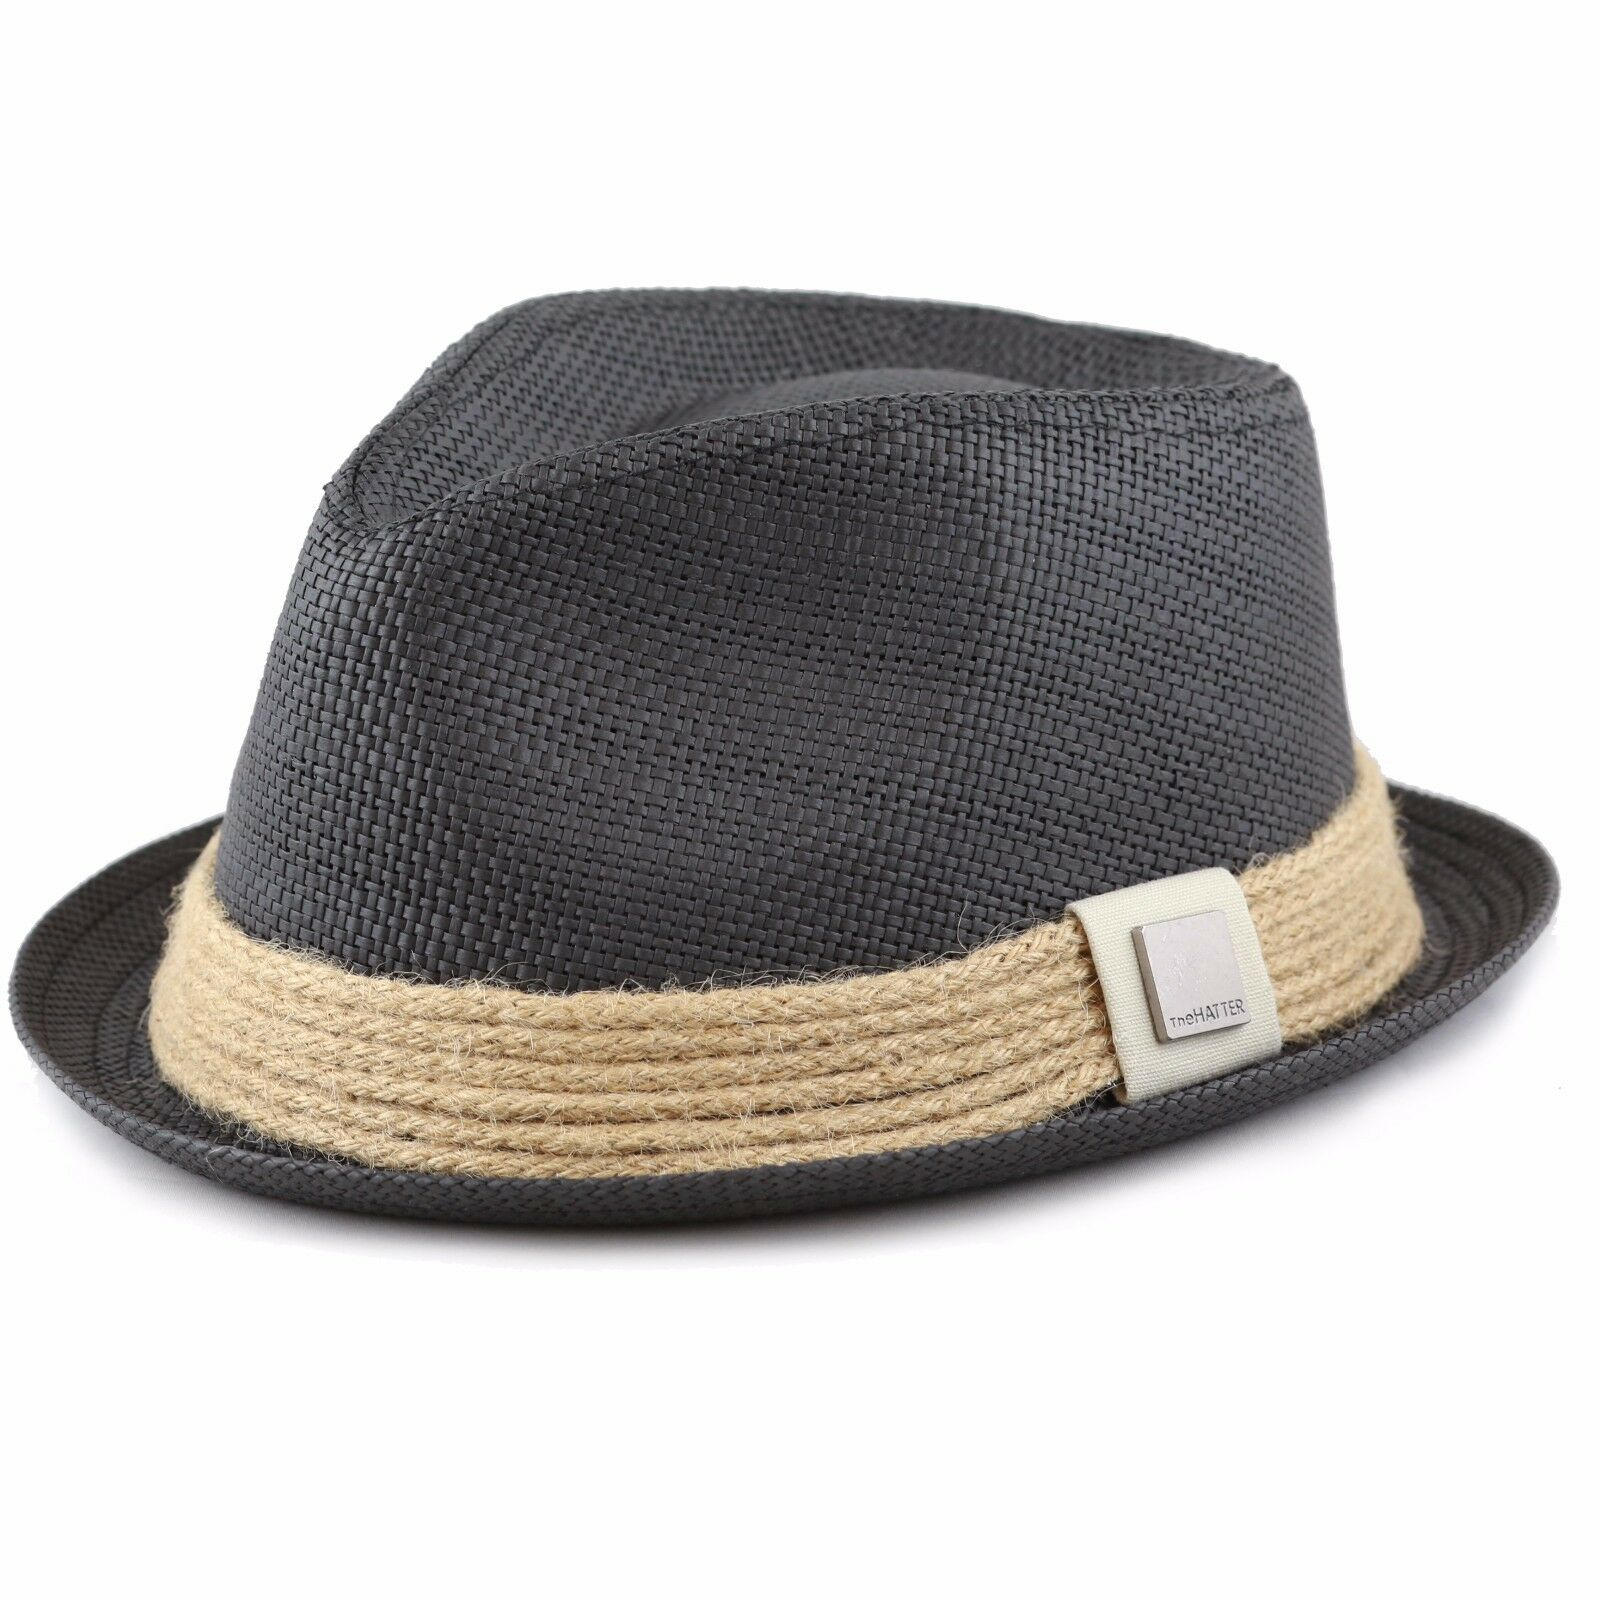 c7cd98aa0451e THE HAT DEPOT Womens Short Brim Sun Straw Fedora Hat with Raffia ...